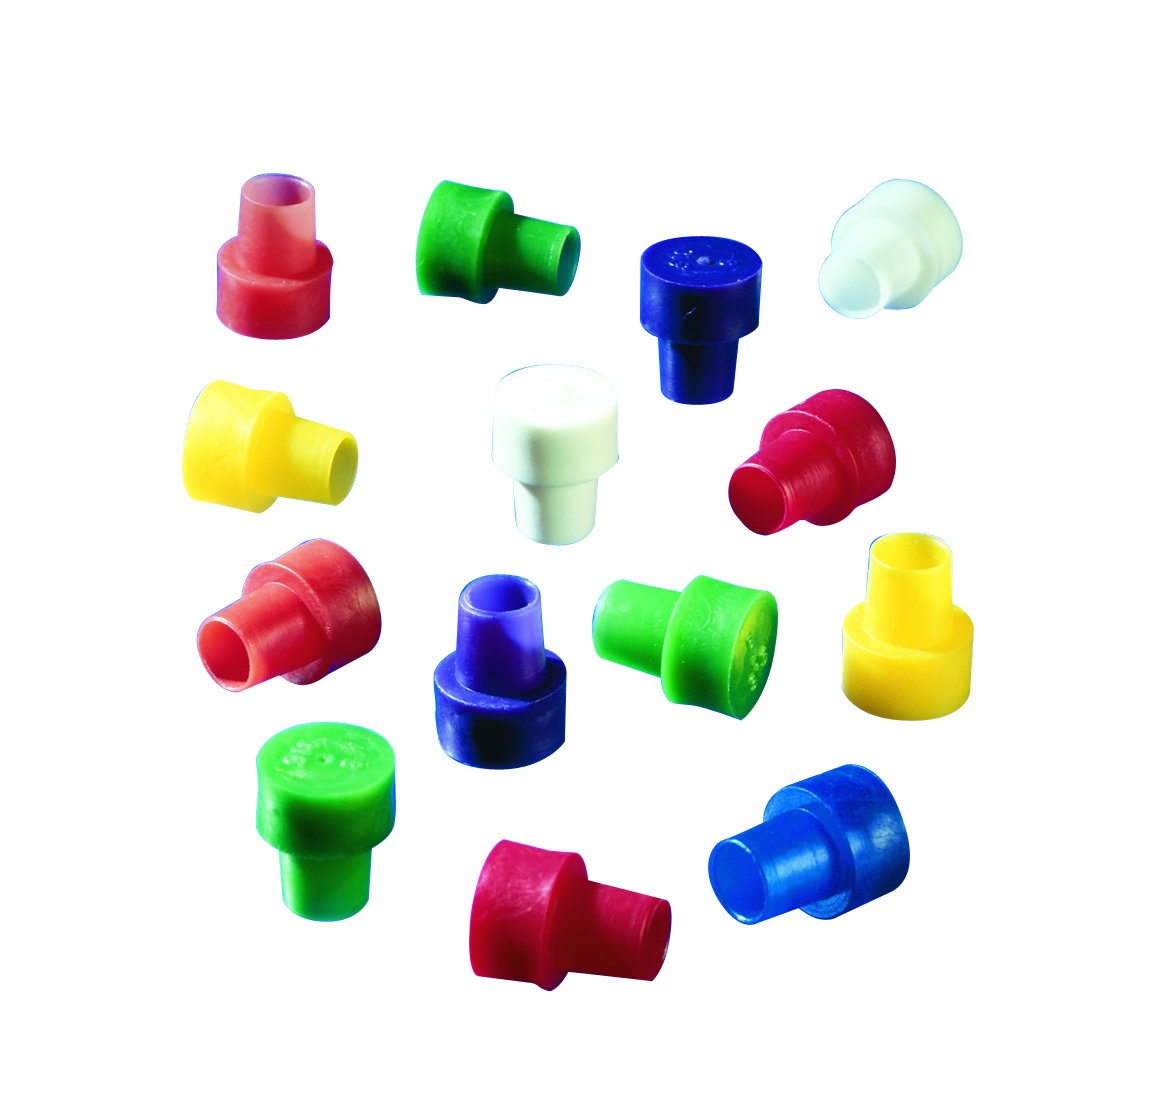 Wilmad 521-ASST-100 Lab Glass Disposable Caps for 5 mm OD NMR Tubes (Pack of 100)